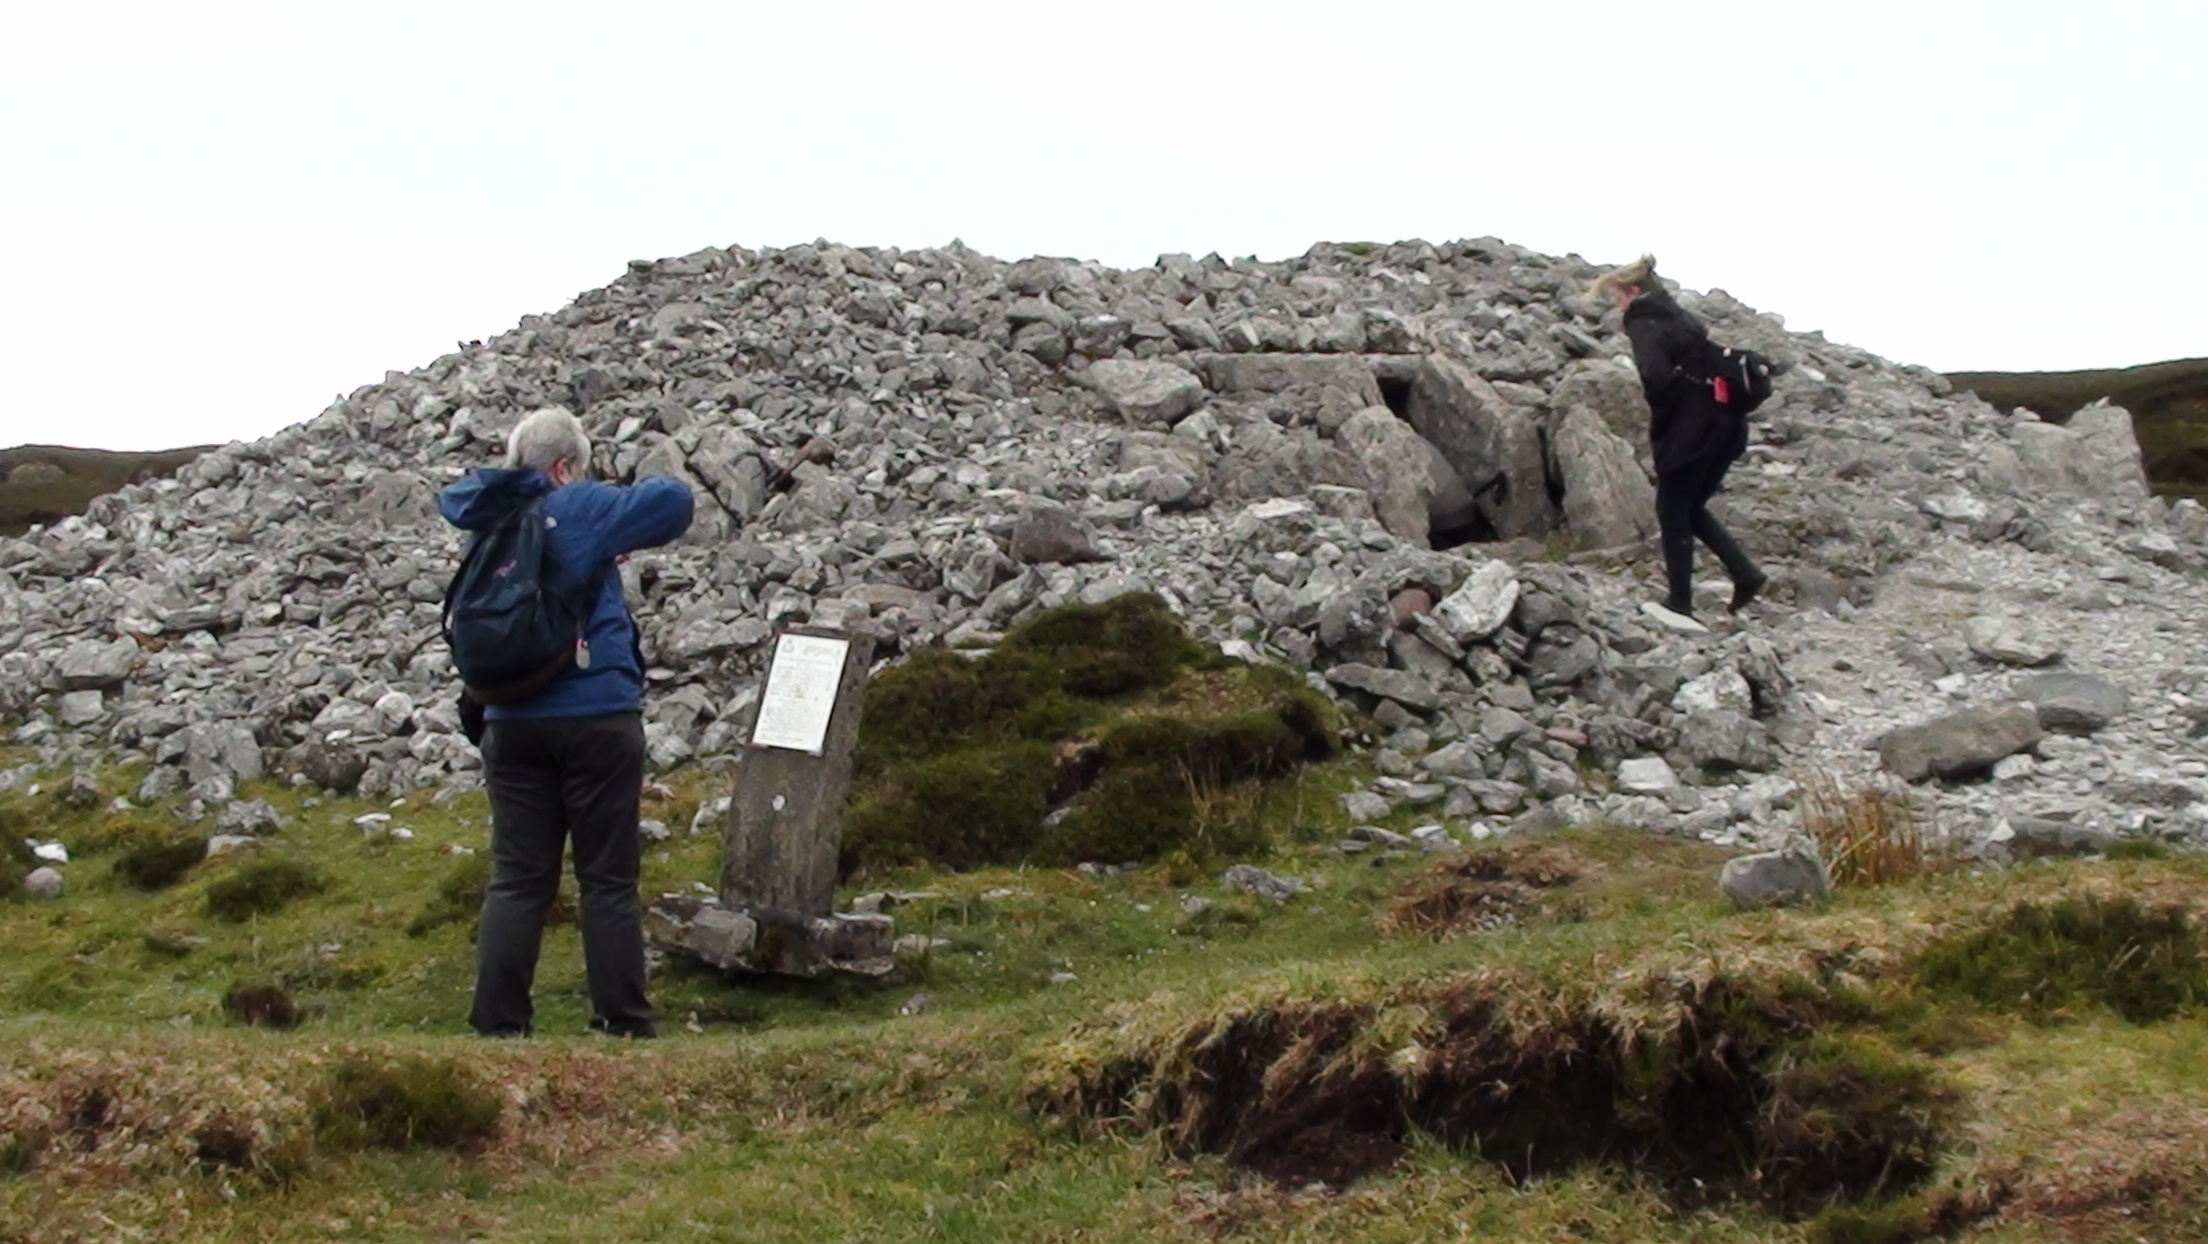 Exploring the Carrowkeel passage tombs